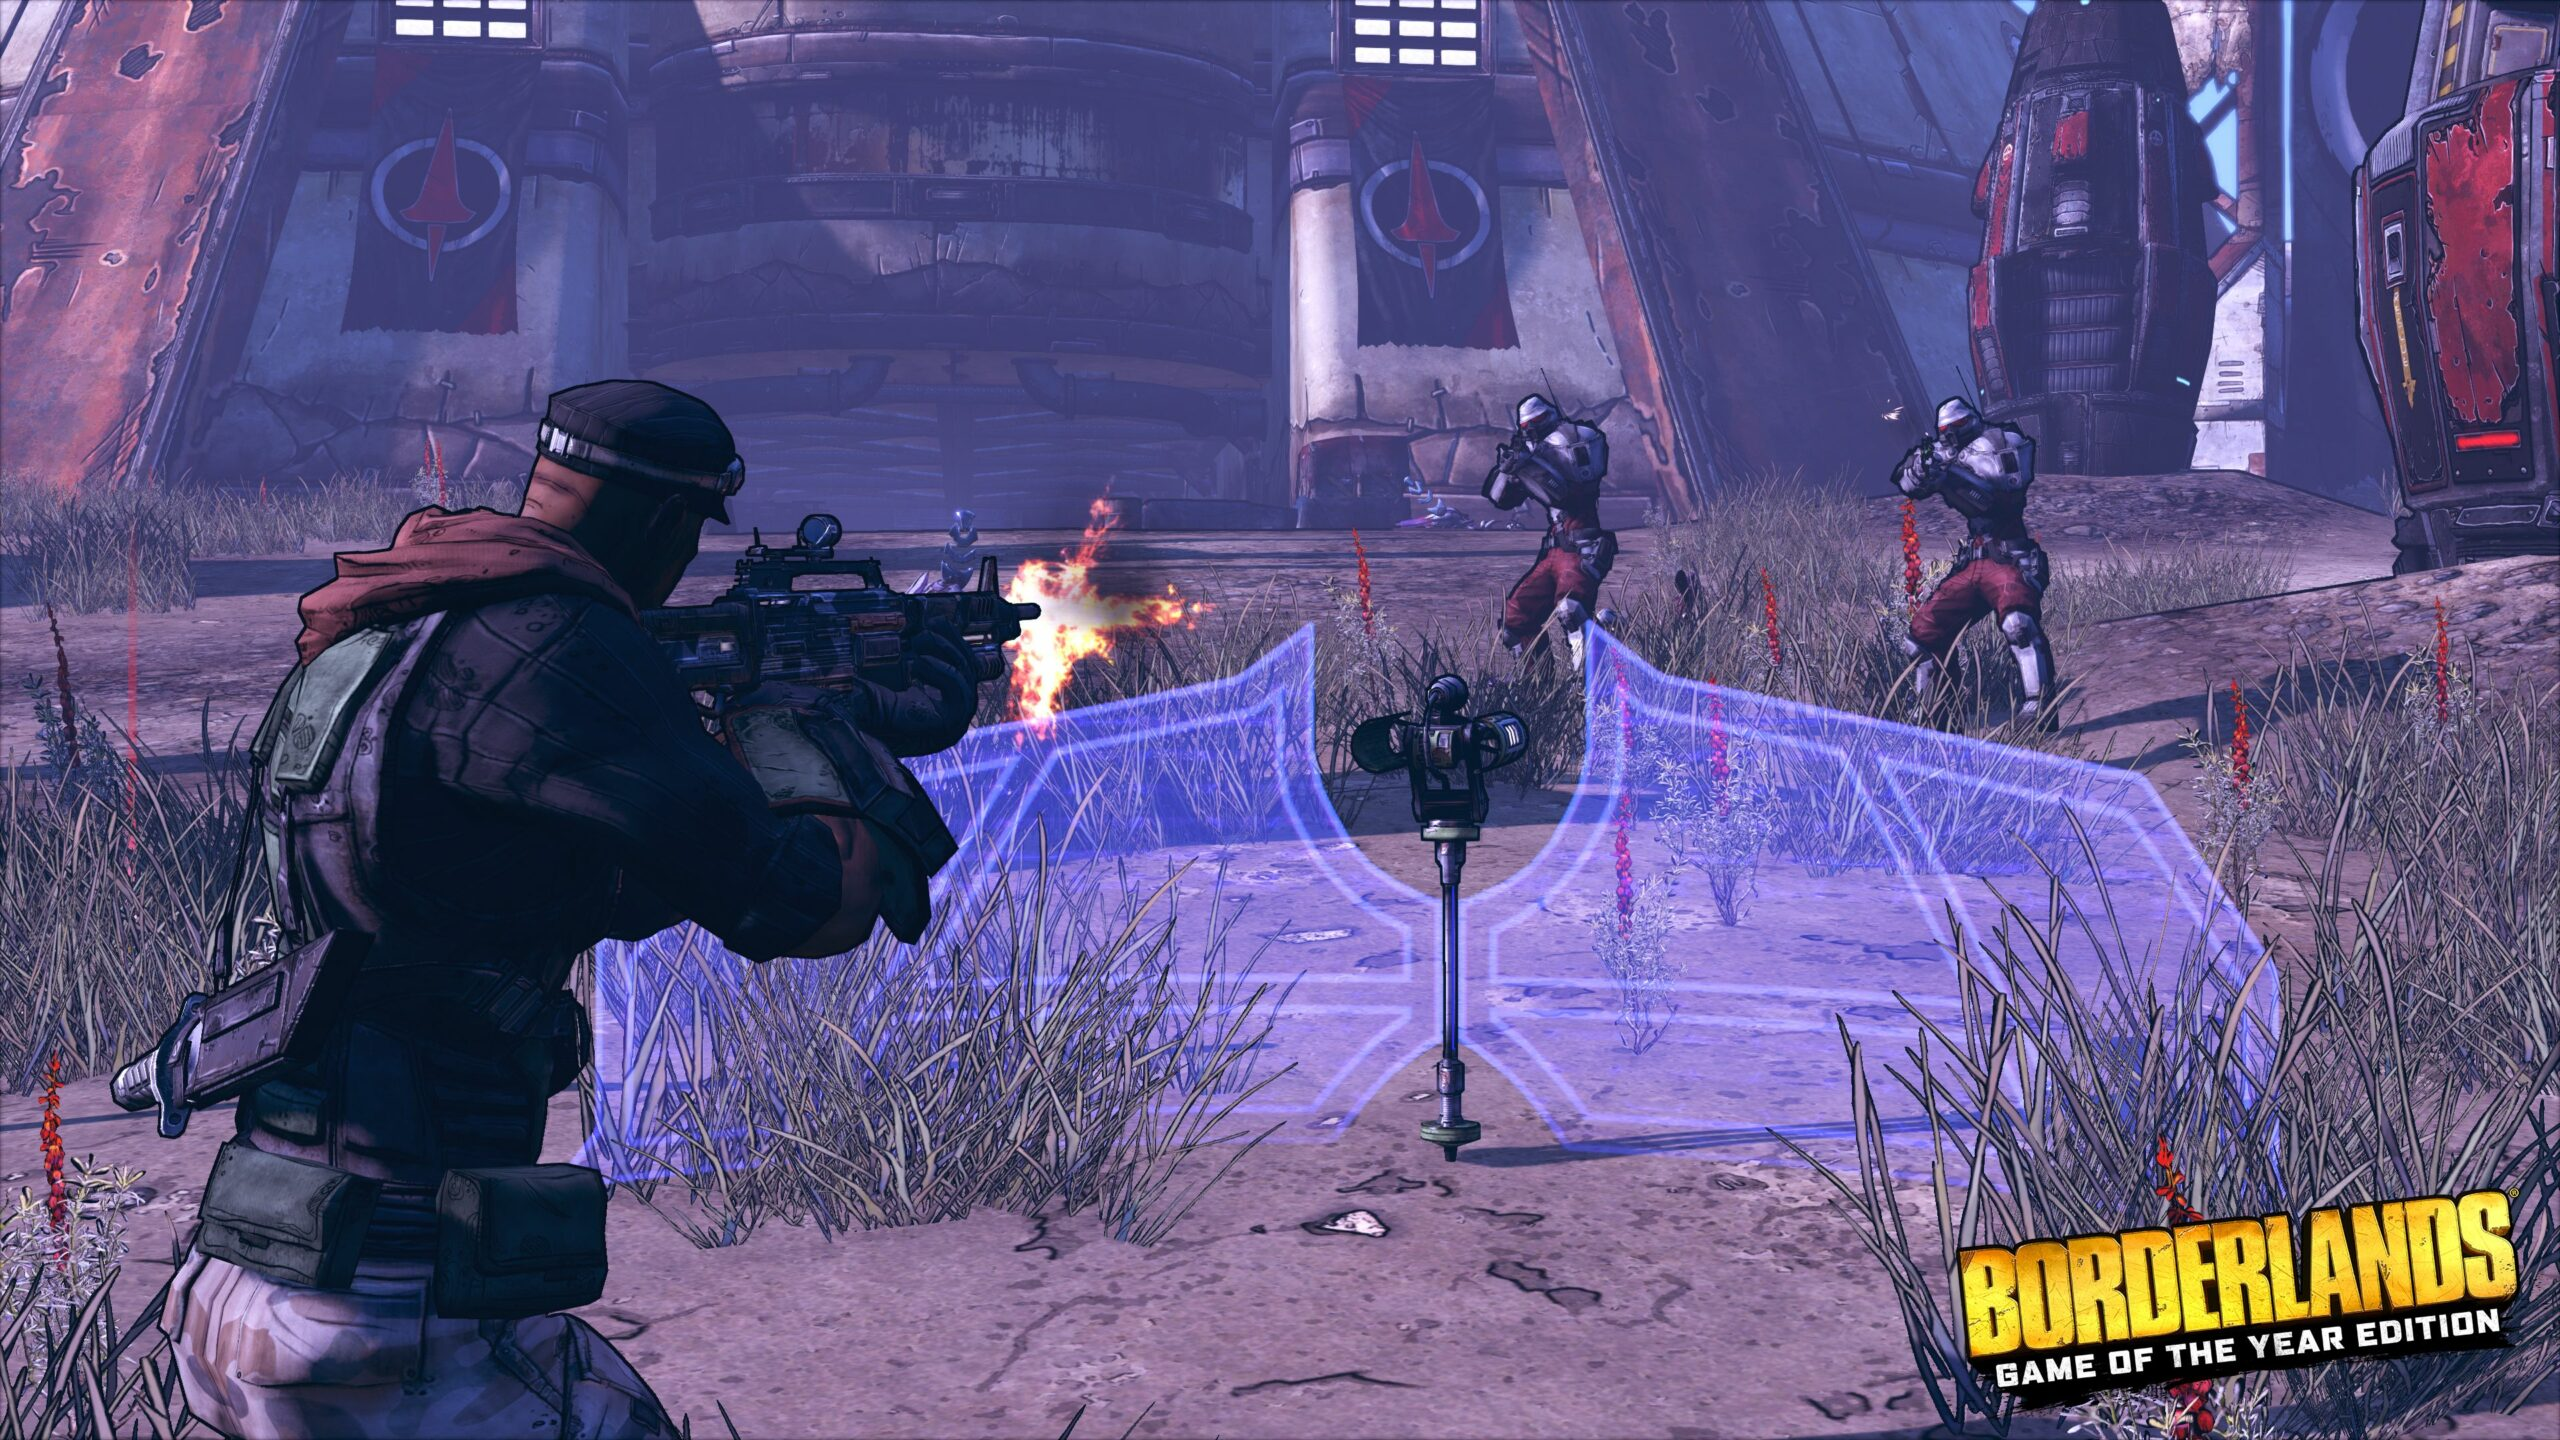 Borderlands-Game-of-the-Year-Edition_2019_03-28-19_001